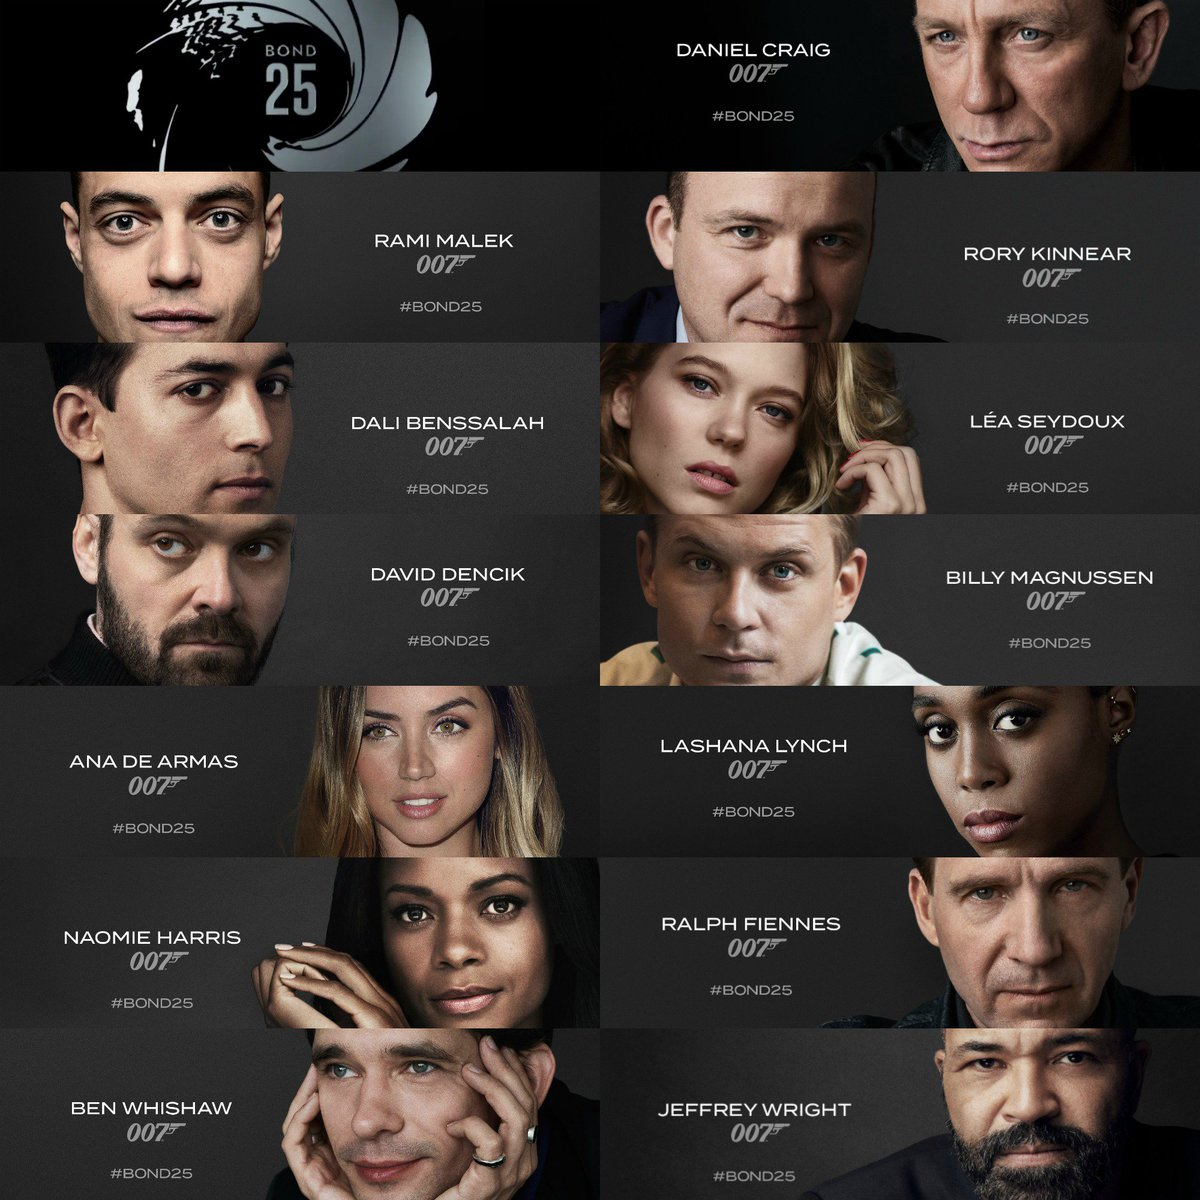 RT @RottenTomatoes: Daniel Craig, Rami Malek, and the rest of the cast of the upcoming James Bond movie #Bond25 https://t.co/OLFiG8iHH5